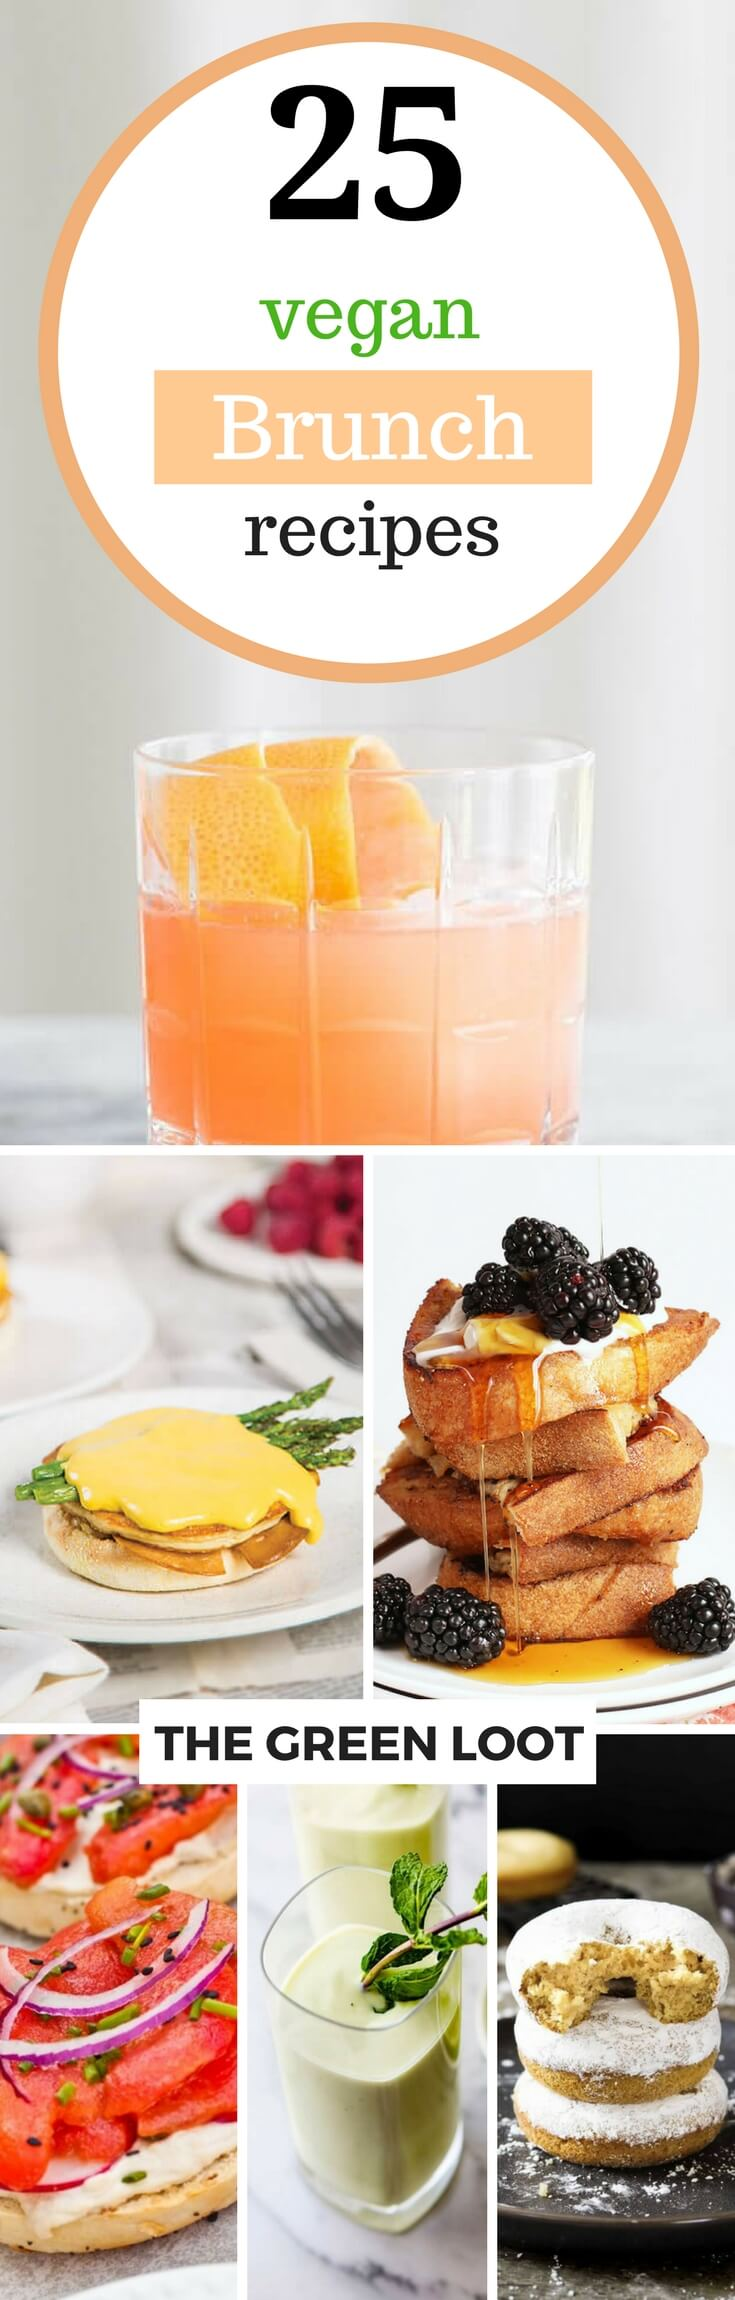 See these Vegan Brunch Recipes and Ideas to throw the best party ever! Whether you are hosting for your small family or a big crowd, these tasty breakfast recipes and cocktails will make everyone happy. | The Green Loot #vegan #brunch